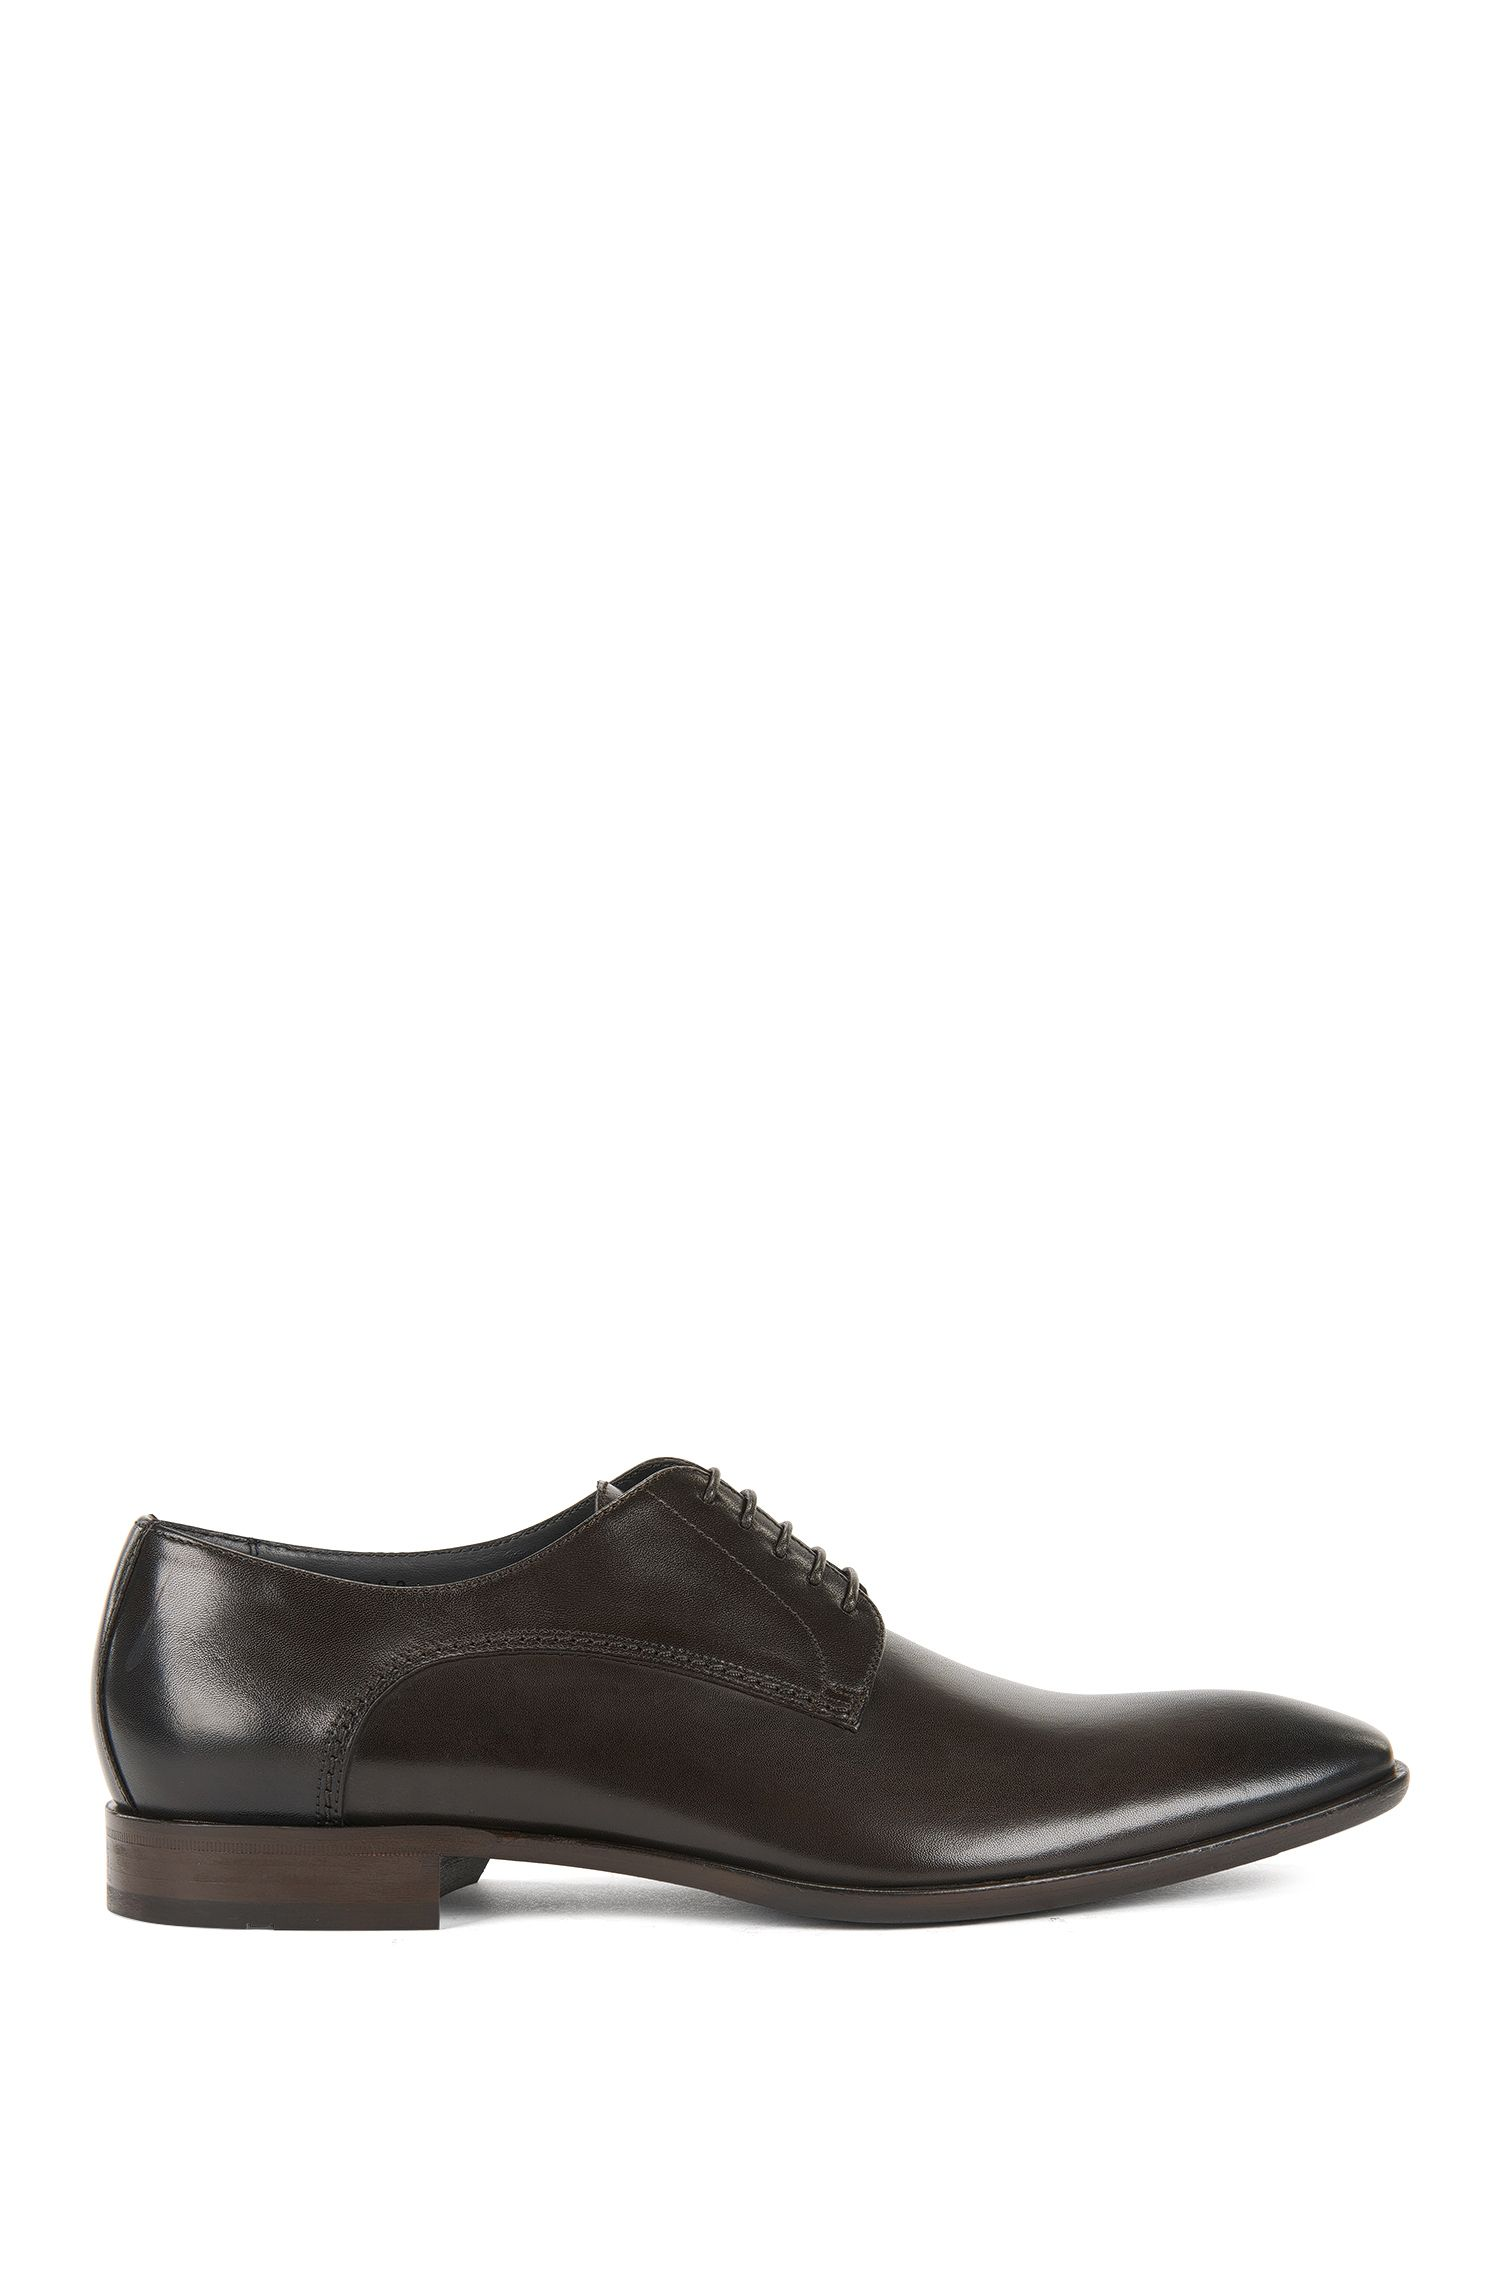 'Carmons' | Leather Derby Dress Shoes